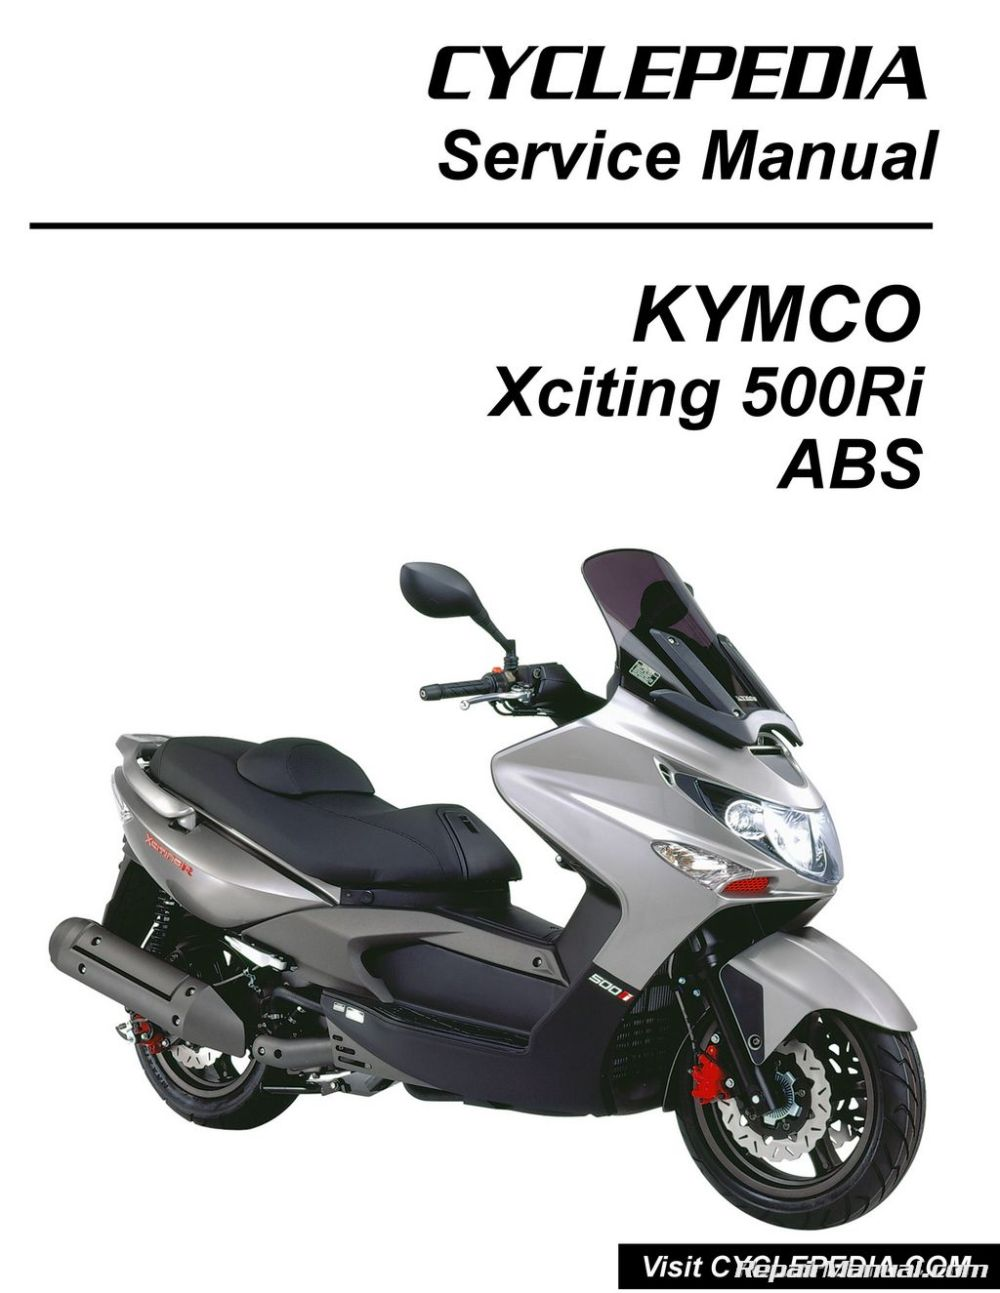 medium resolution of kymco xciting 500ri abs scooter service manual